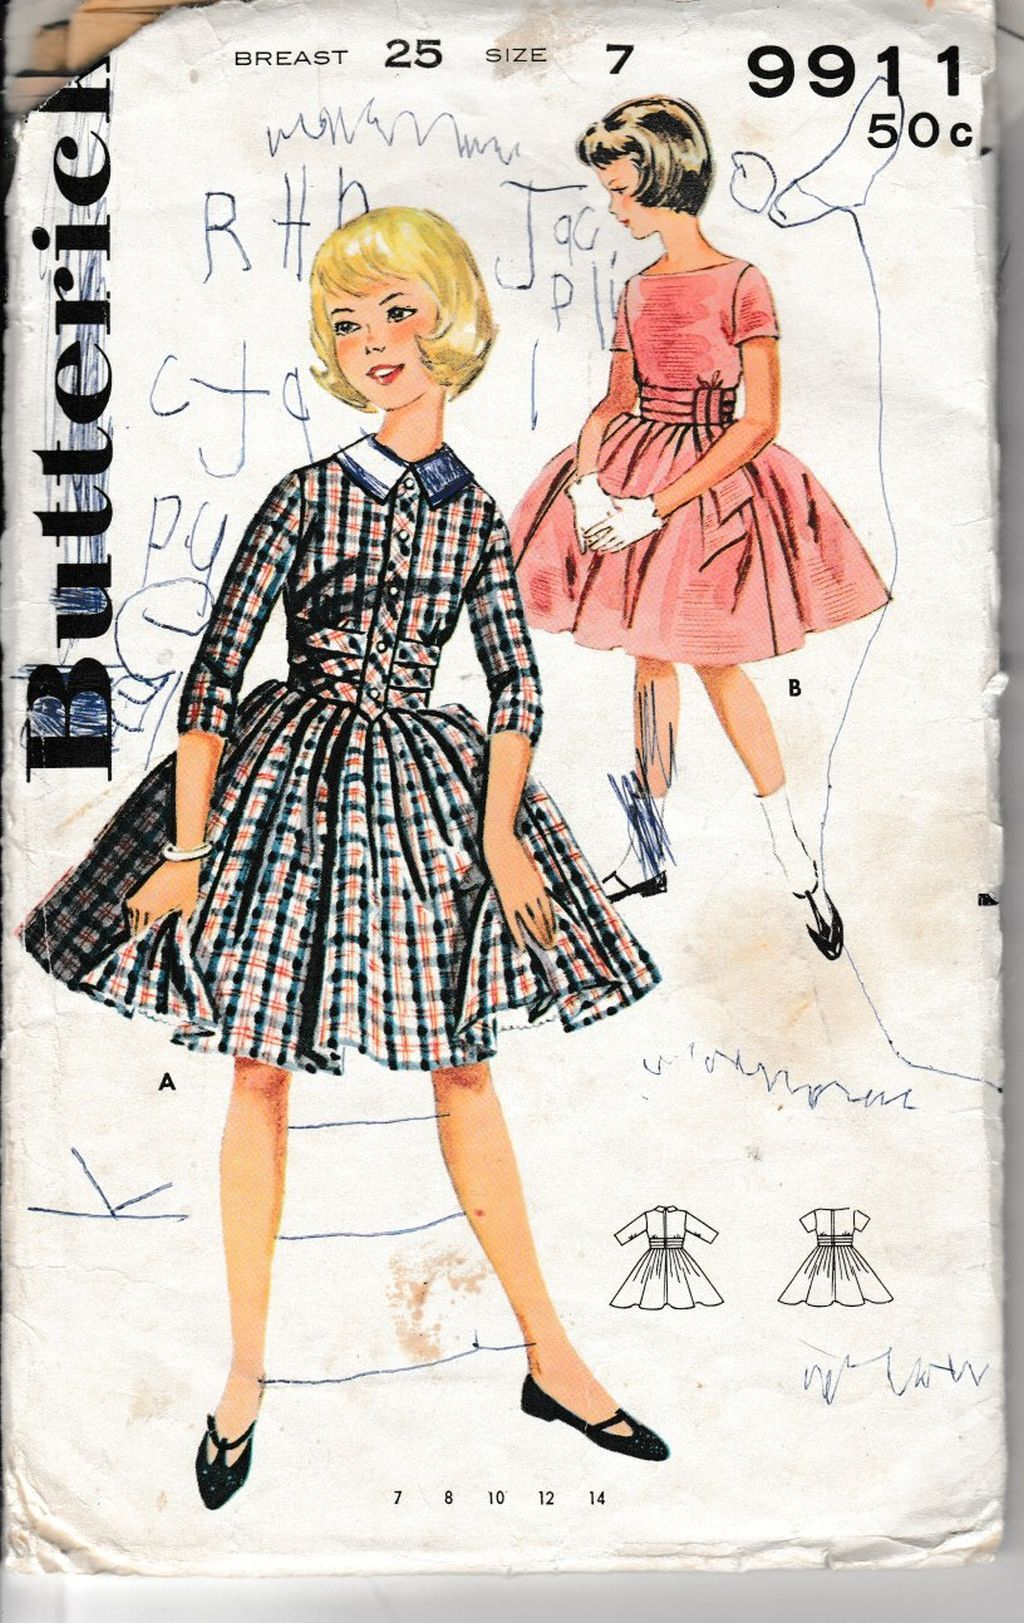 Butterick 9911 Young Girls Full Skirted Dress Vintage 1960's Sewing Pattern - VintageStitching - Vintage Sewing Patterns